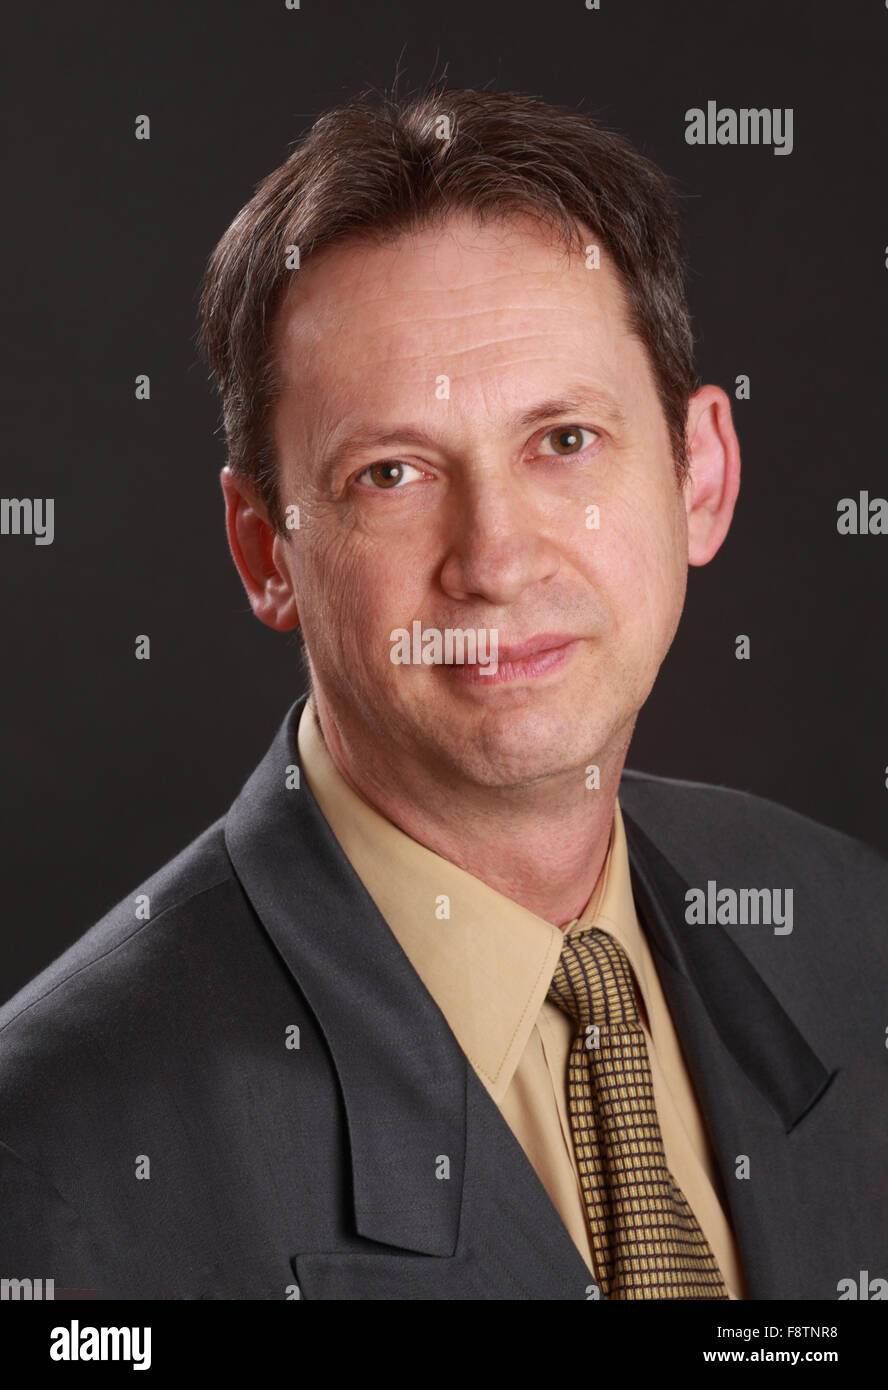 middle-aged businessman Stock Photo